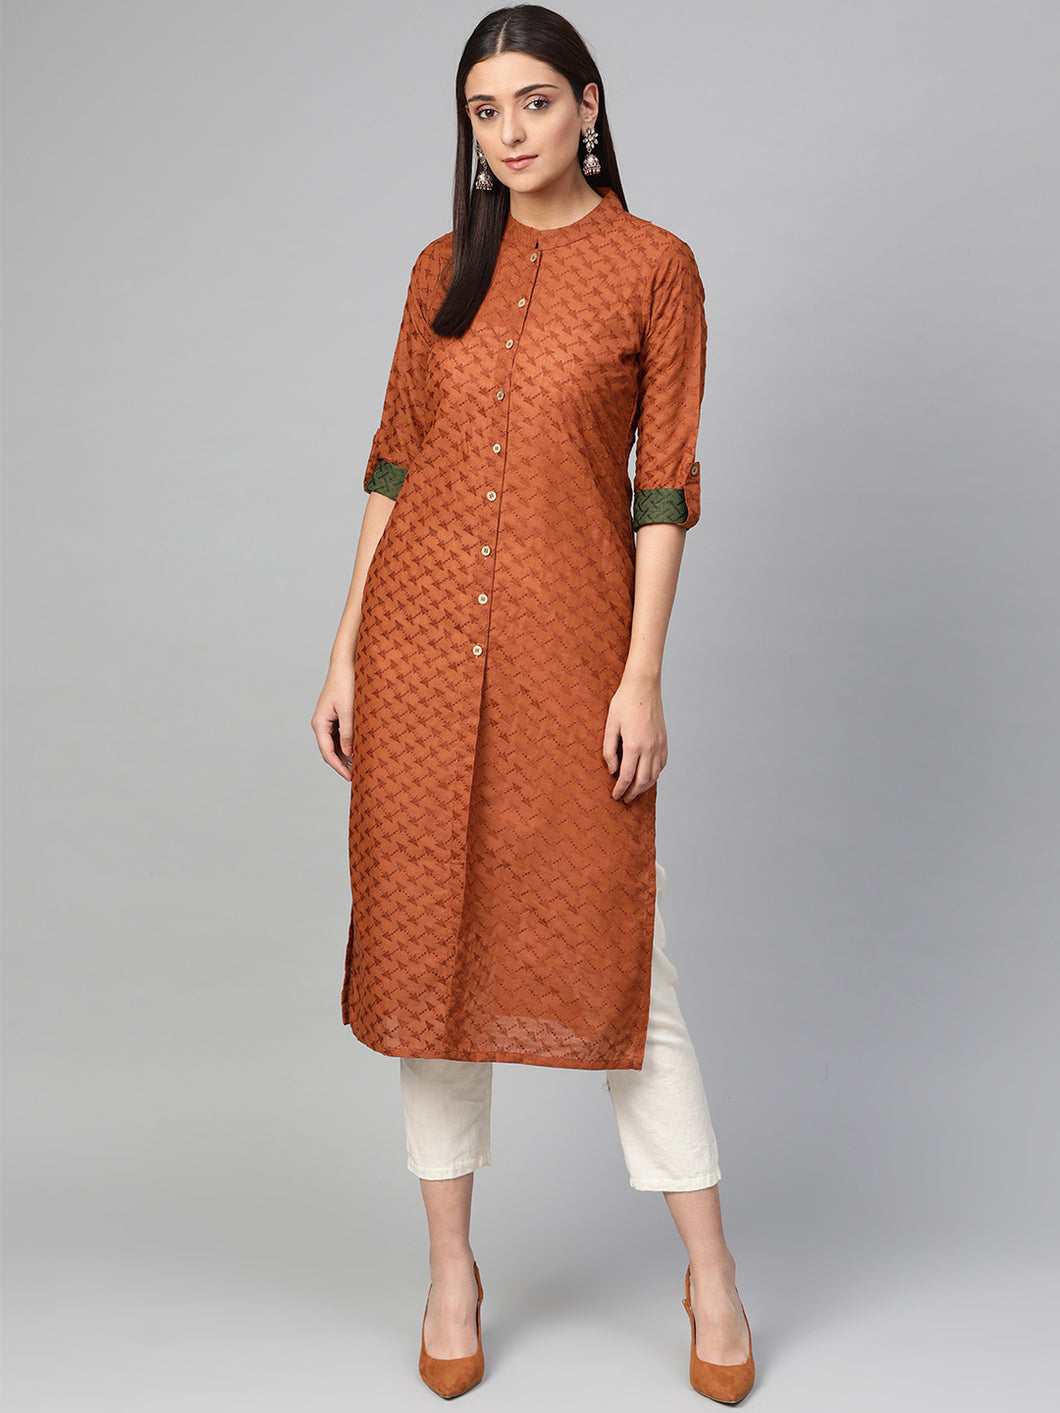 Jompers Women Rust Brown Embroidered Straight Kurta